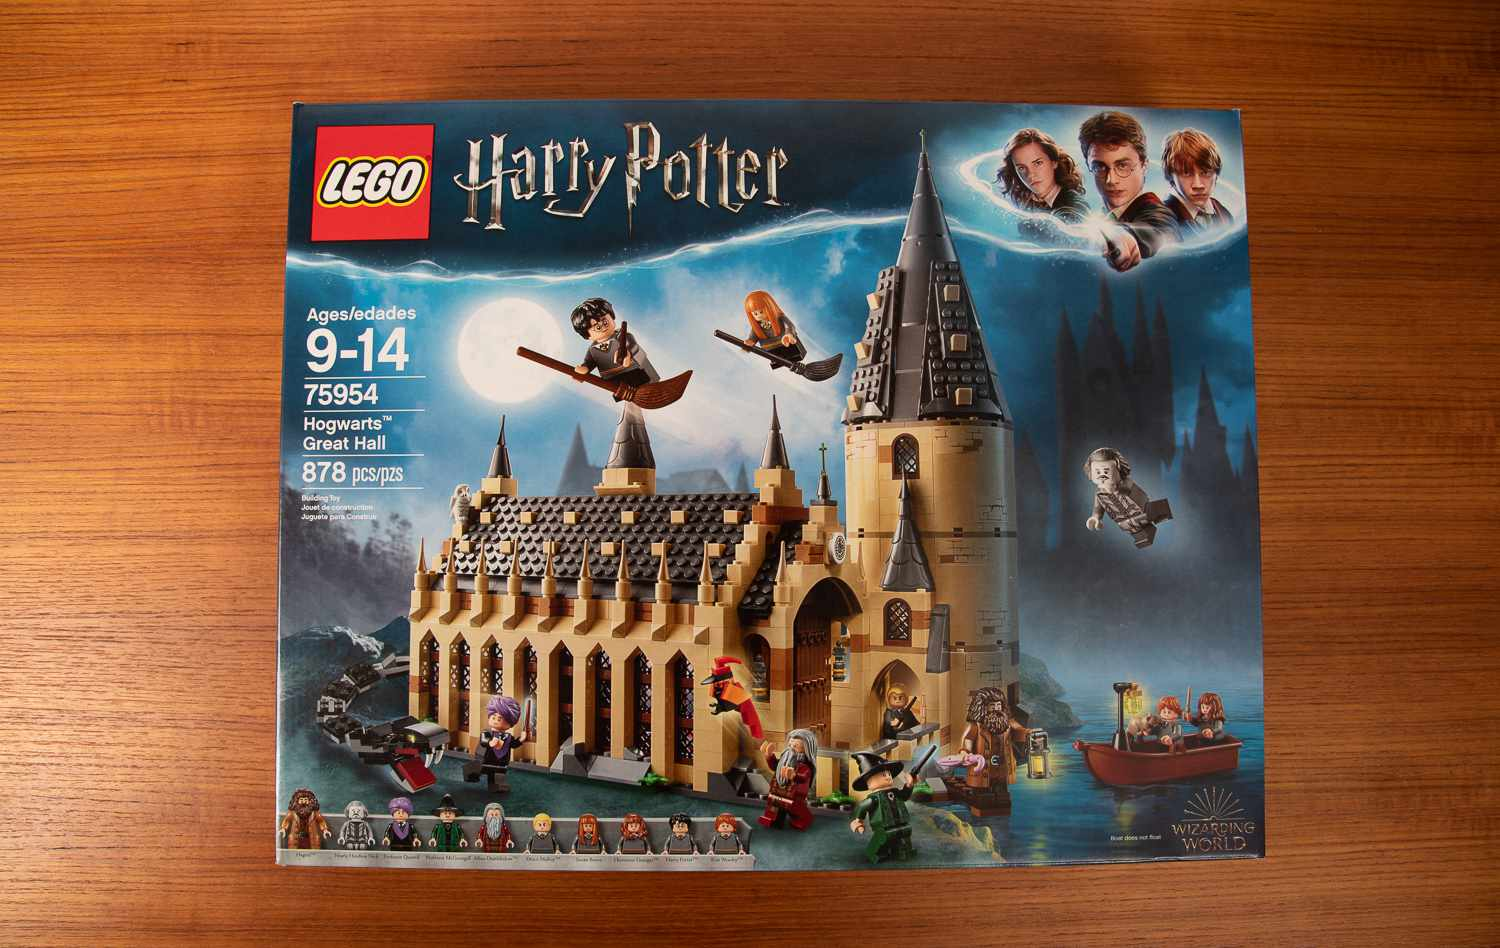 LEGO Harry Potter front